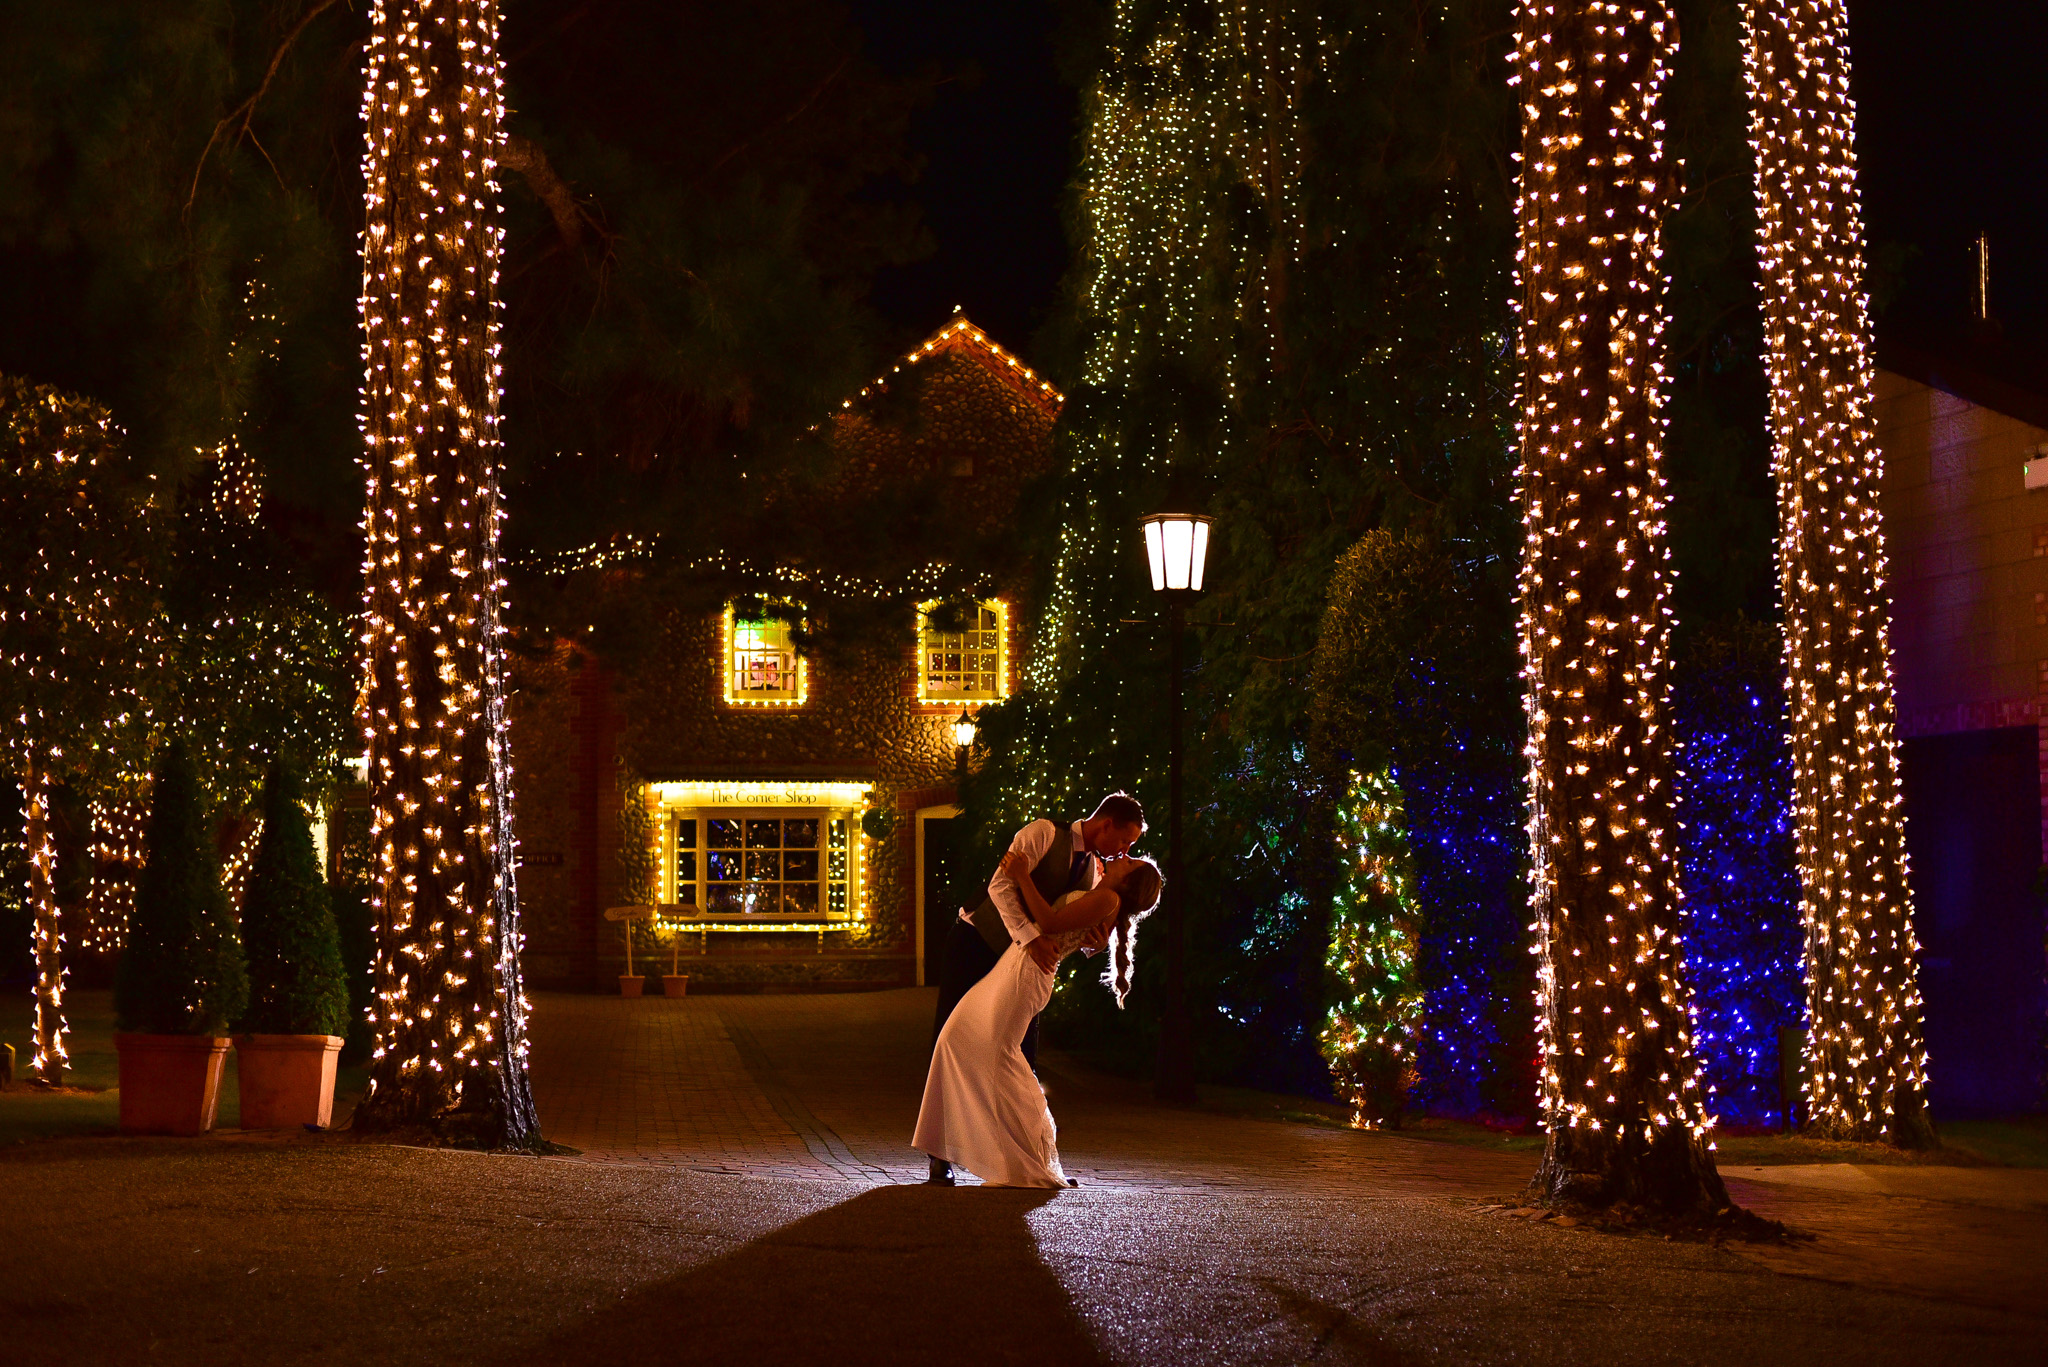 night time wedding photography at thursford garden pavilion in norfolk